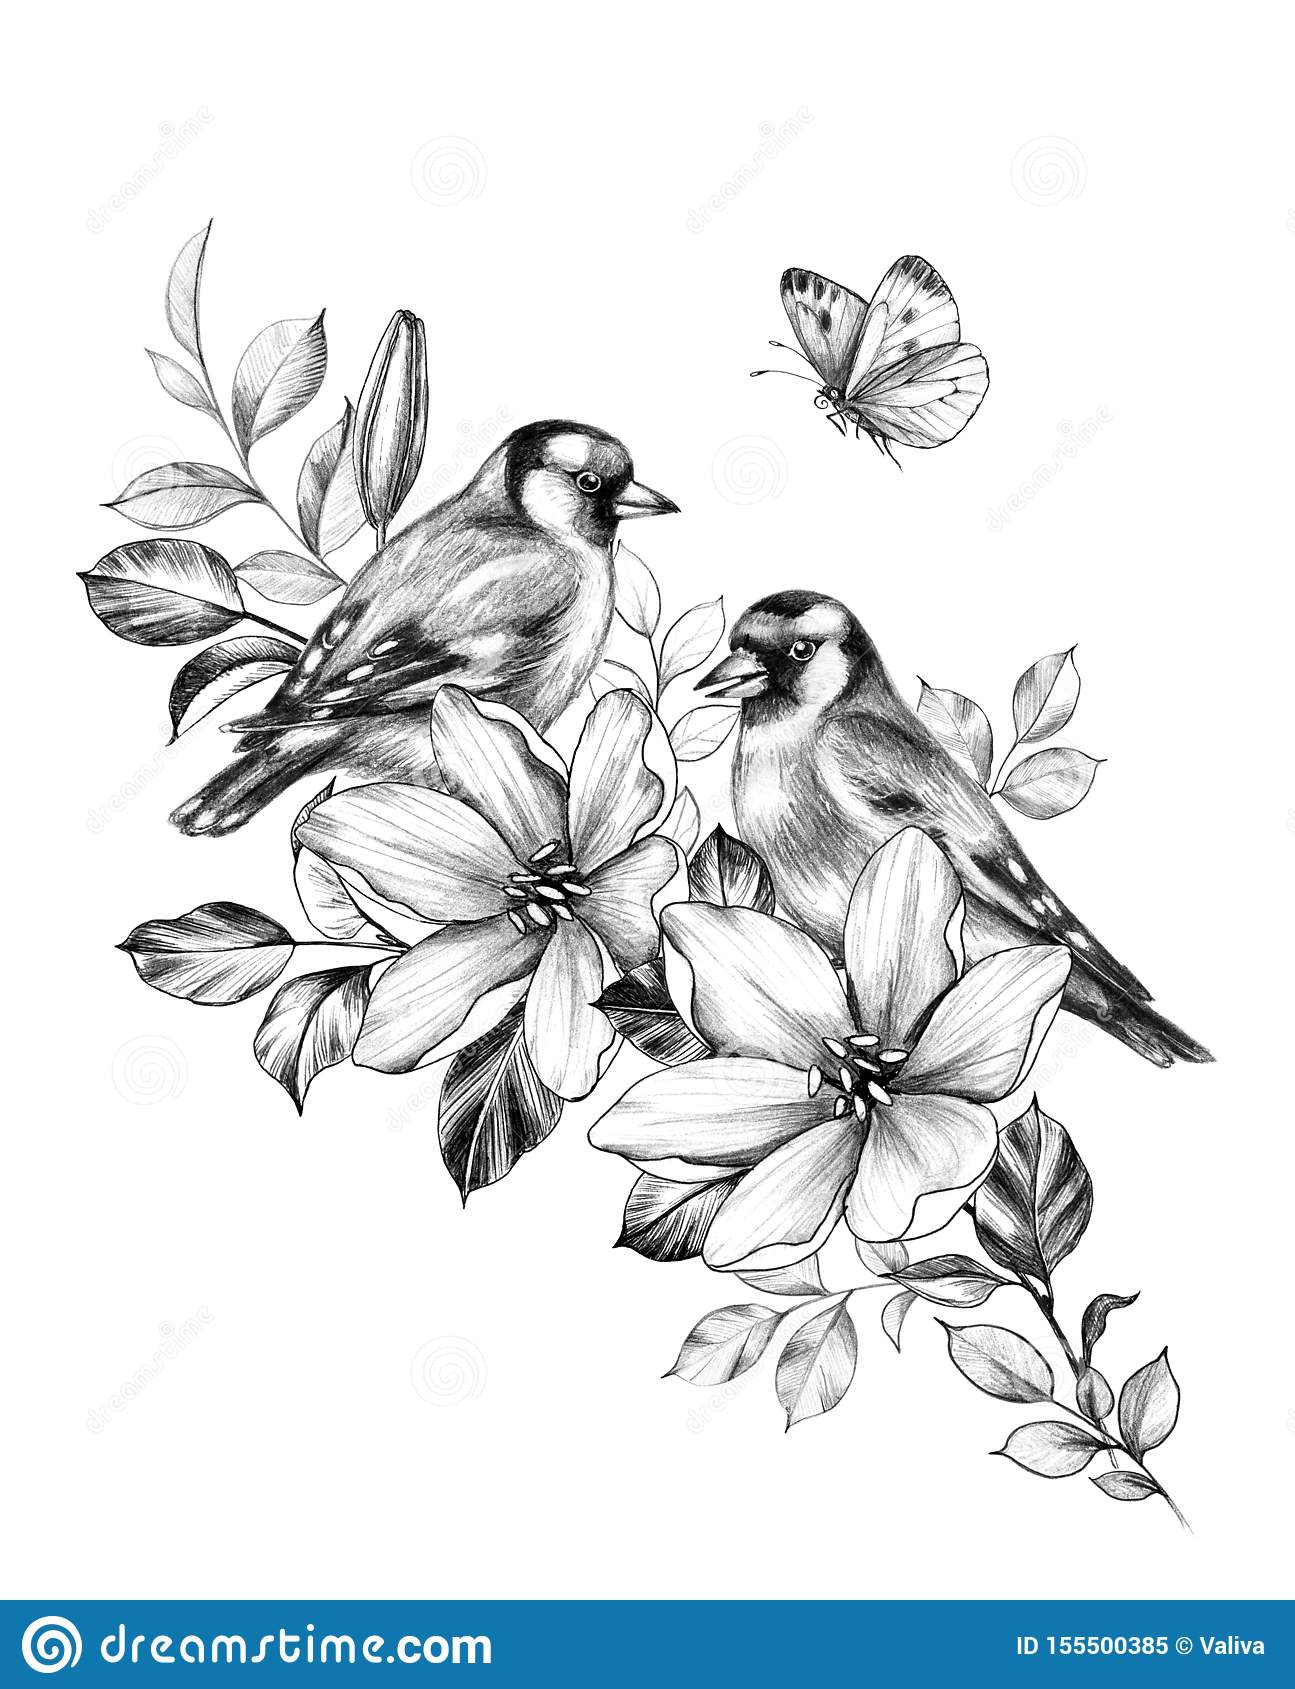 Hand Drawn Goldfinches Sitting On Branch Flower Stock Illustration Illustration Of Cute European 155500385